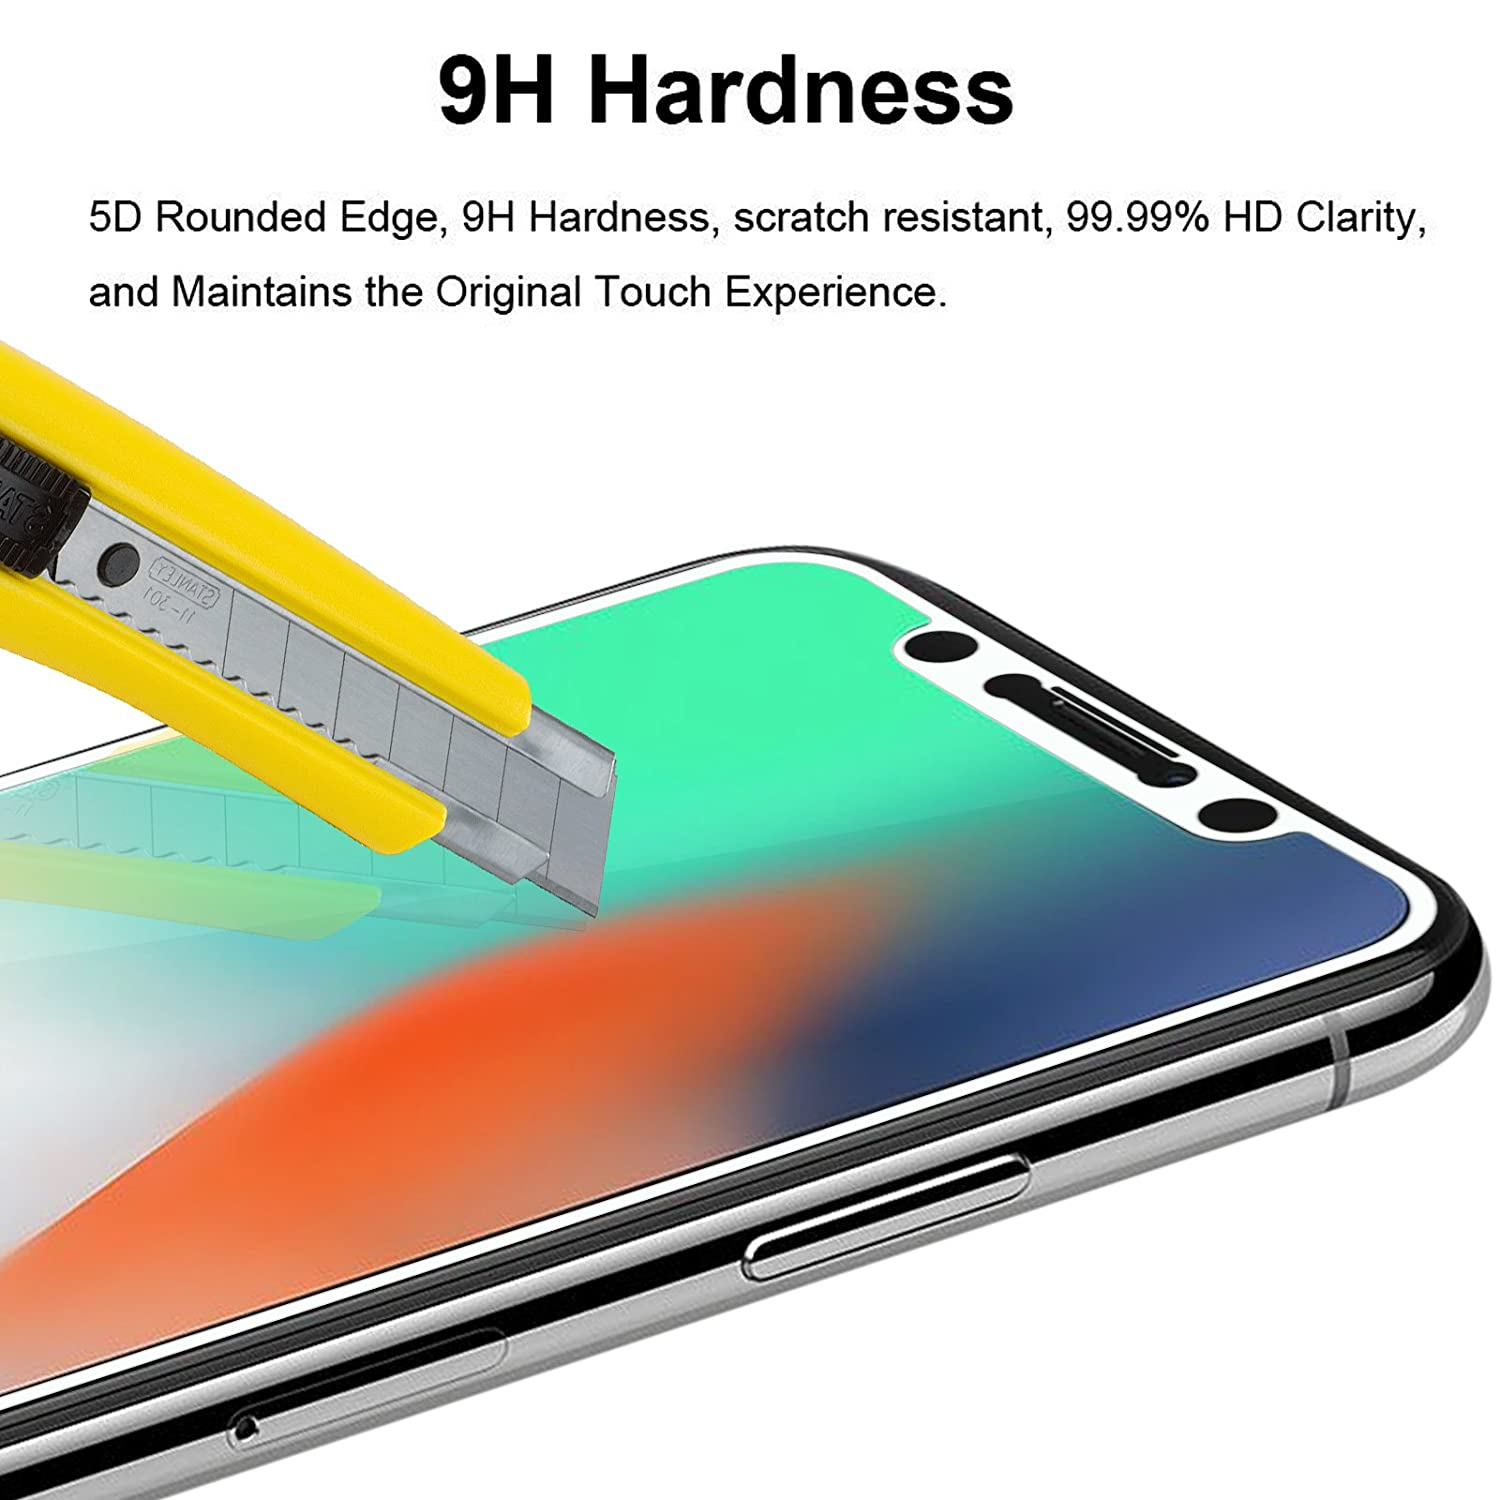 DMG Tempered Glass for iPhone X 5D Curved Edge to Edge Amazon Electronics